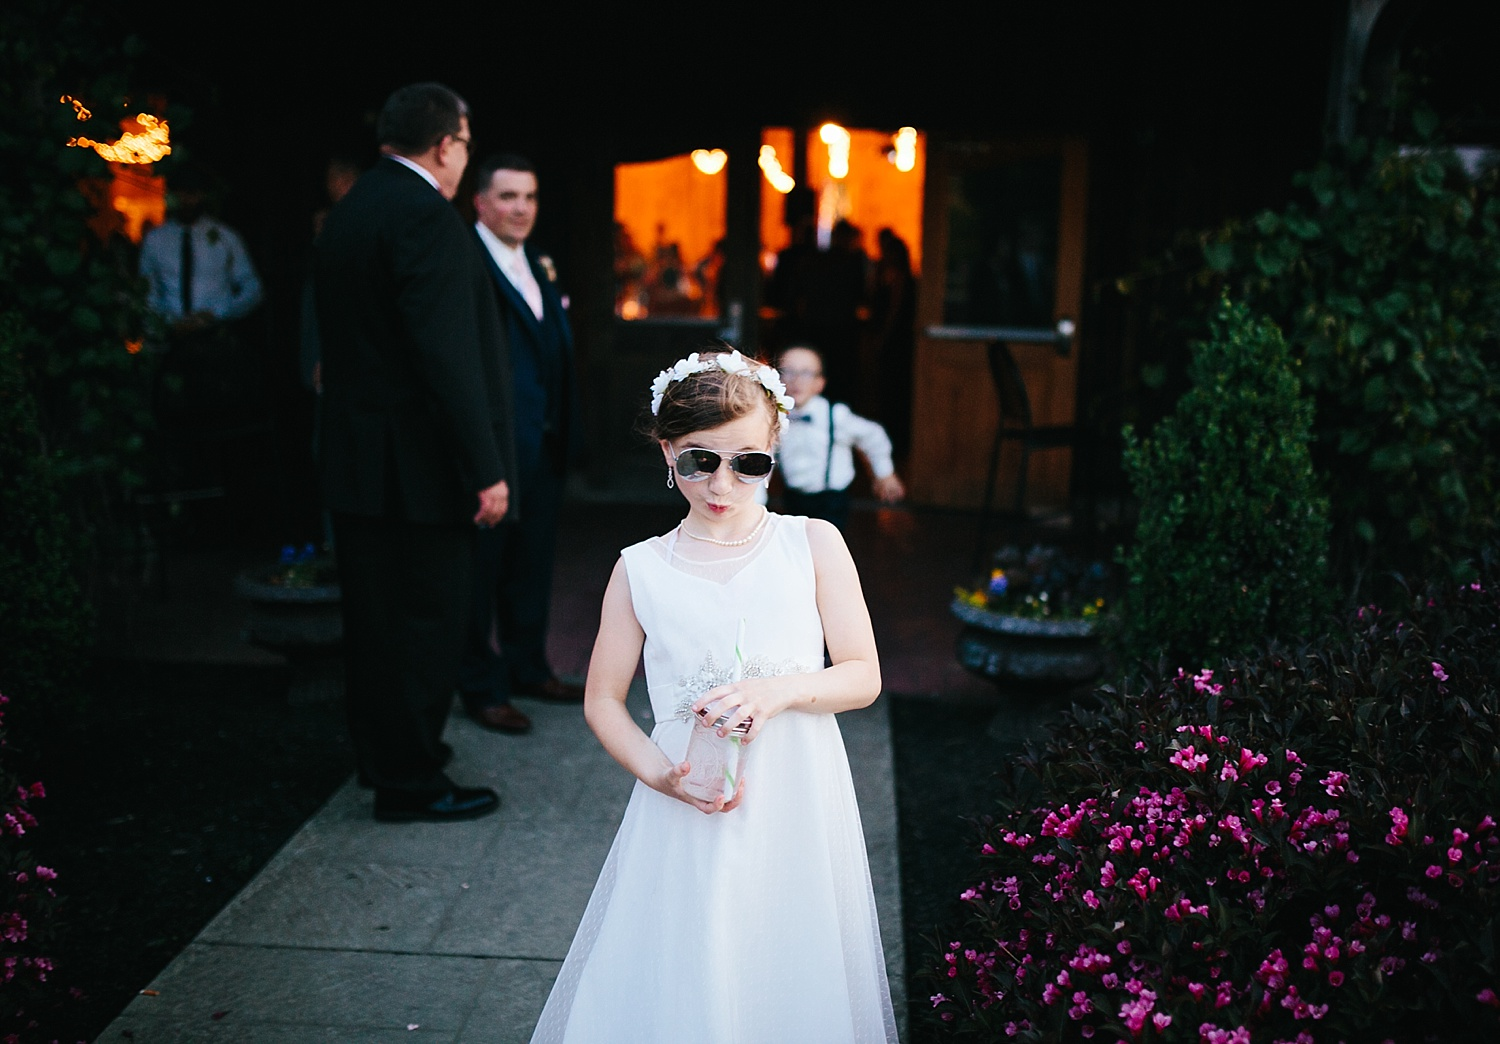 kellishawn_rosebankwinery_newtown_buckscounty_summer_wedding_image073.jpg